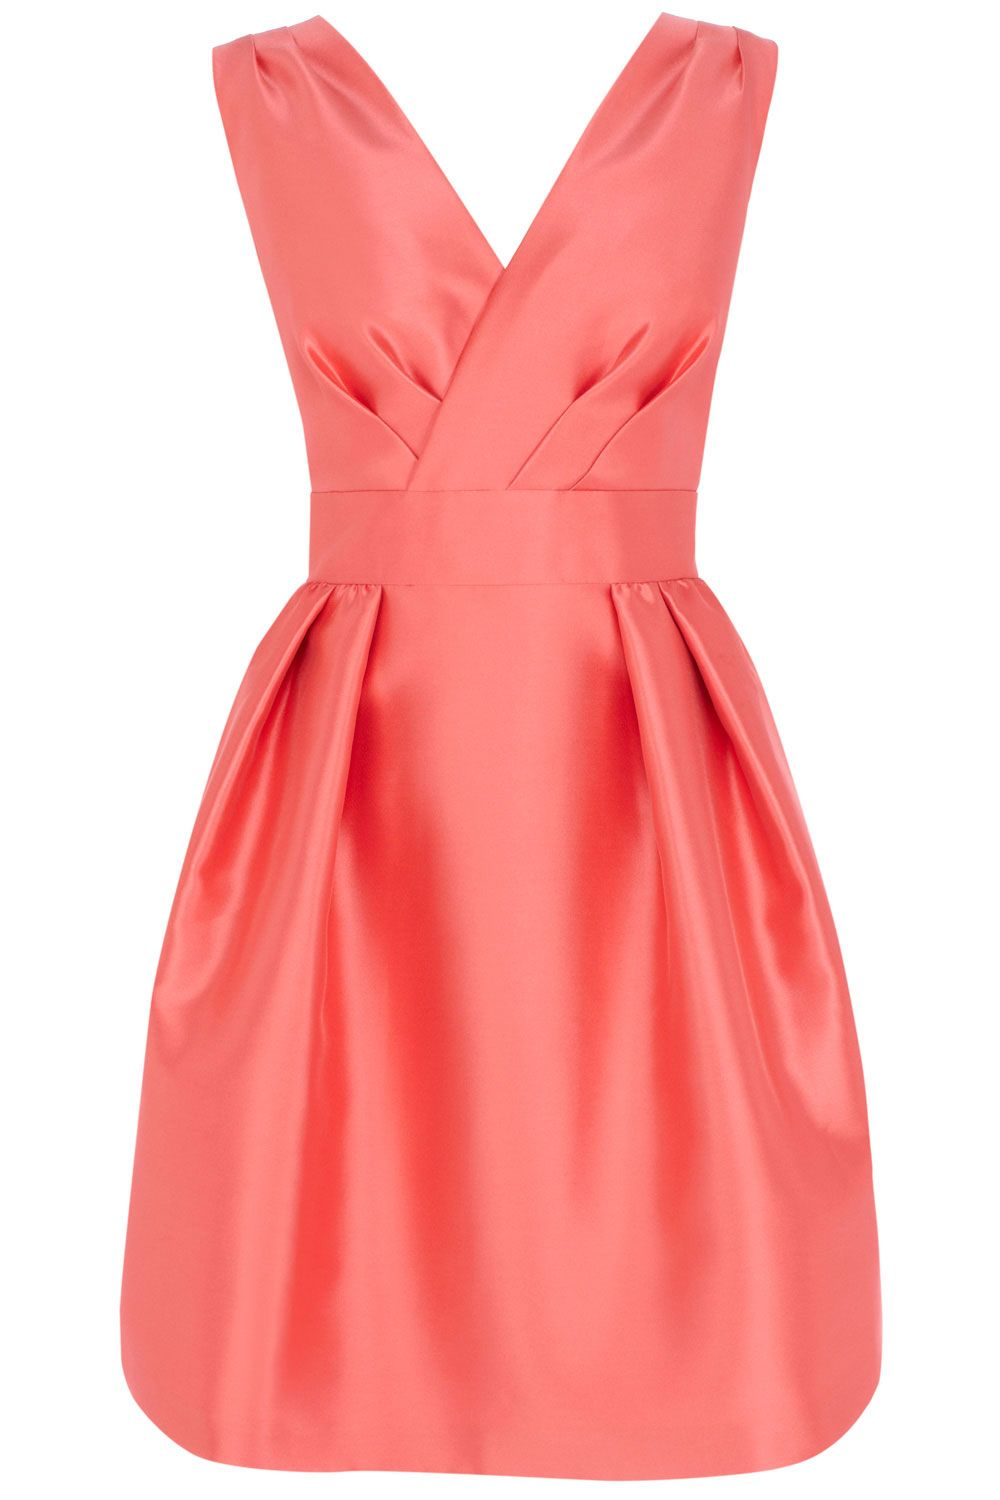 Wedding Guest Dresses You\'ll Actually Want To Wear Again And Again ...